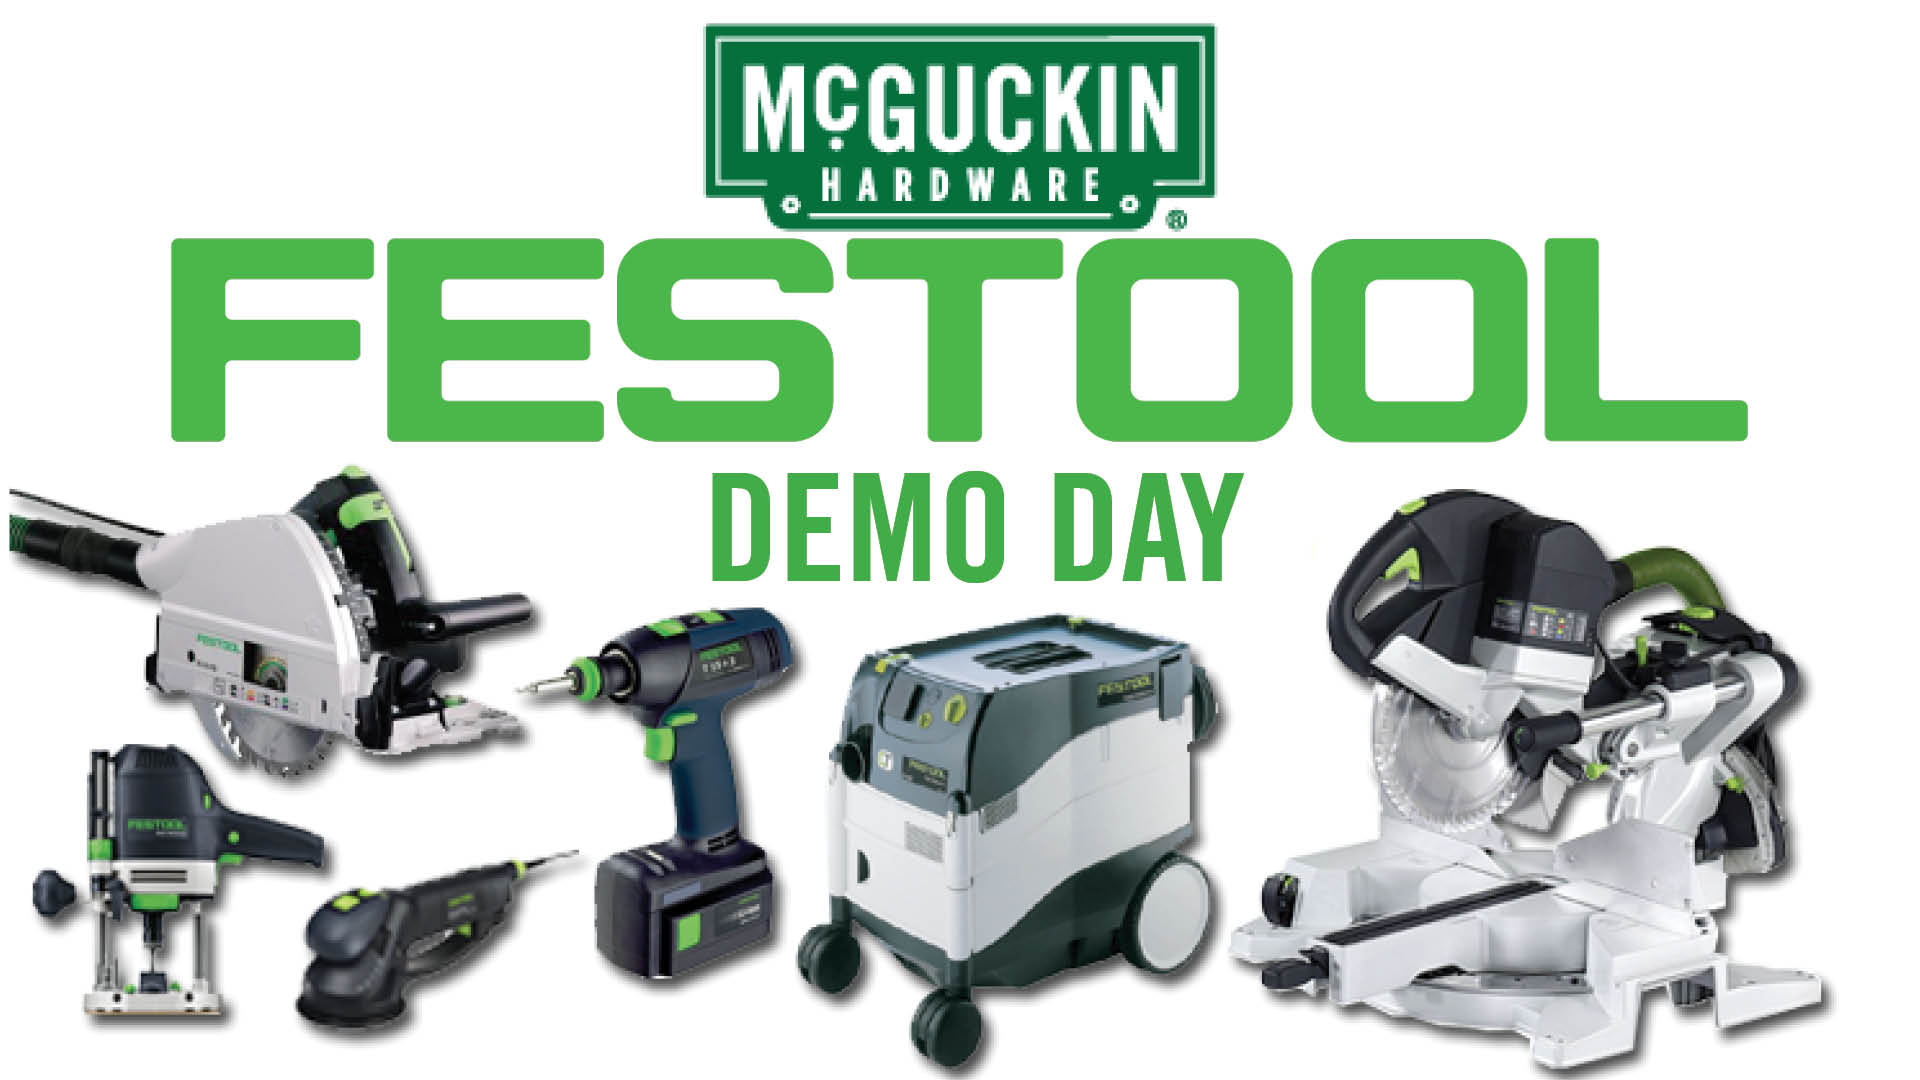 Festool Demo Day at McGuckin Hardware